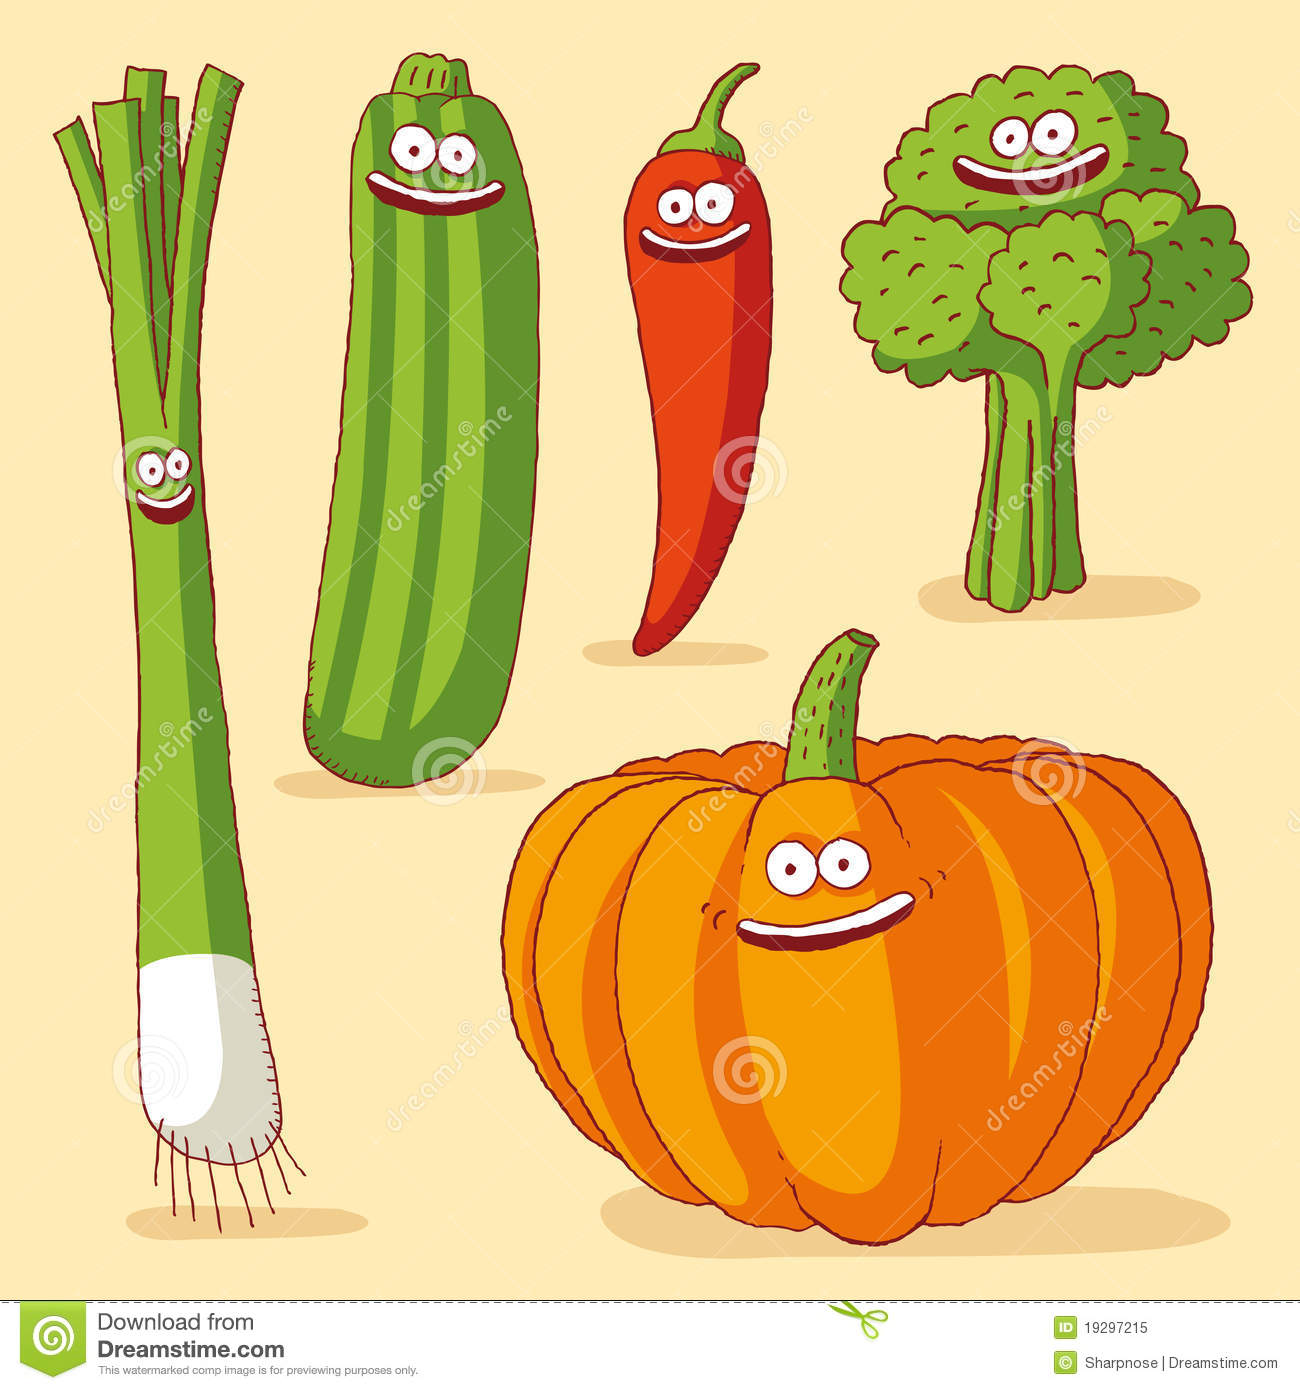 Royalty Free Stock Photo Funny Vegetables Image19297215 further How To Draw The Cheshire Cat Tattoo additionally Scary Ghost Face Template as well Cute Cartoon Face Vector 94128 also Digital Animated Timer Cliparts. on pumpkin mouth cartoon